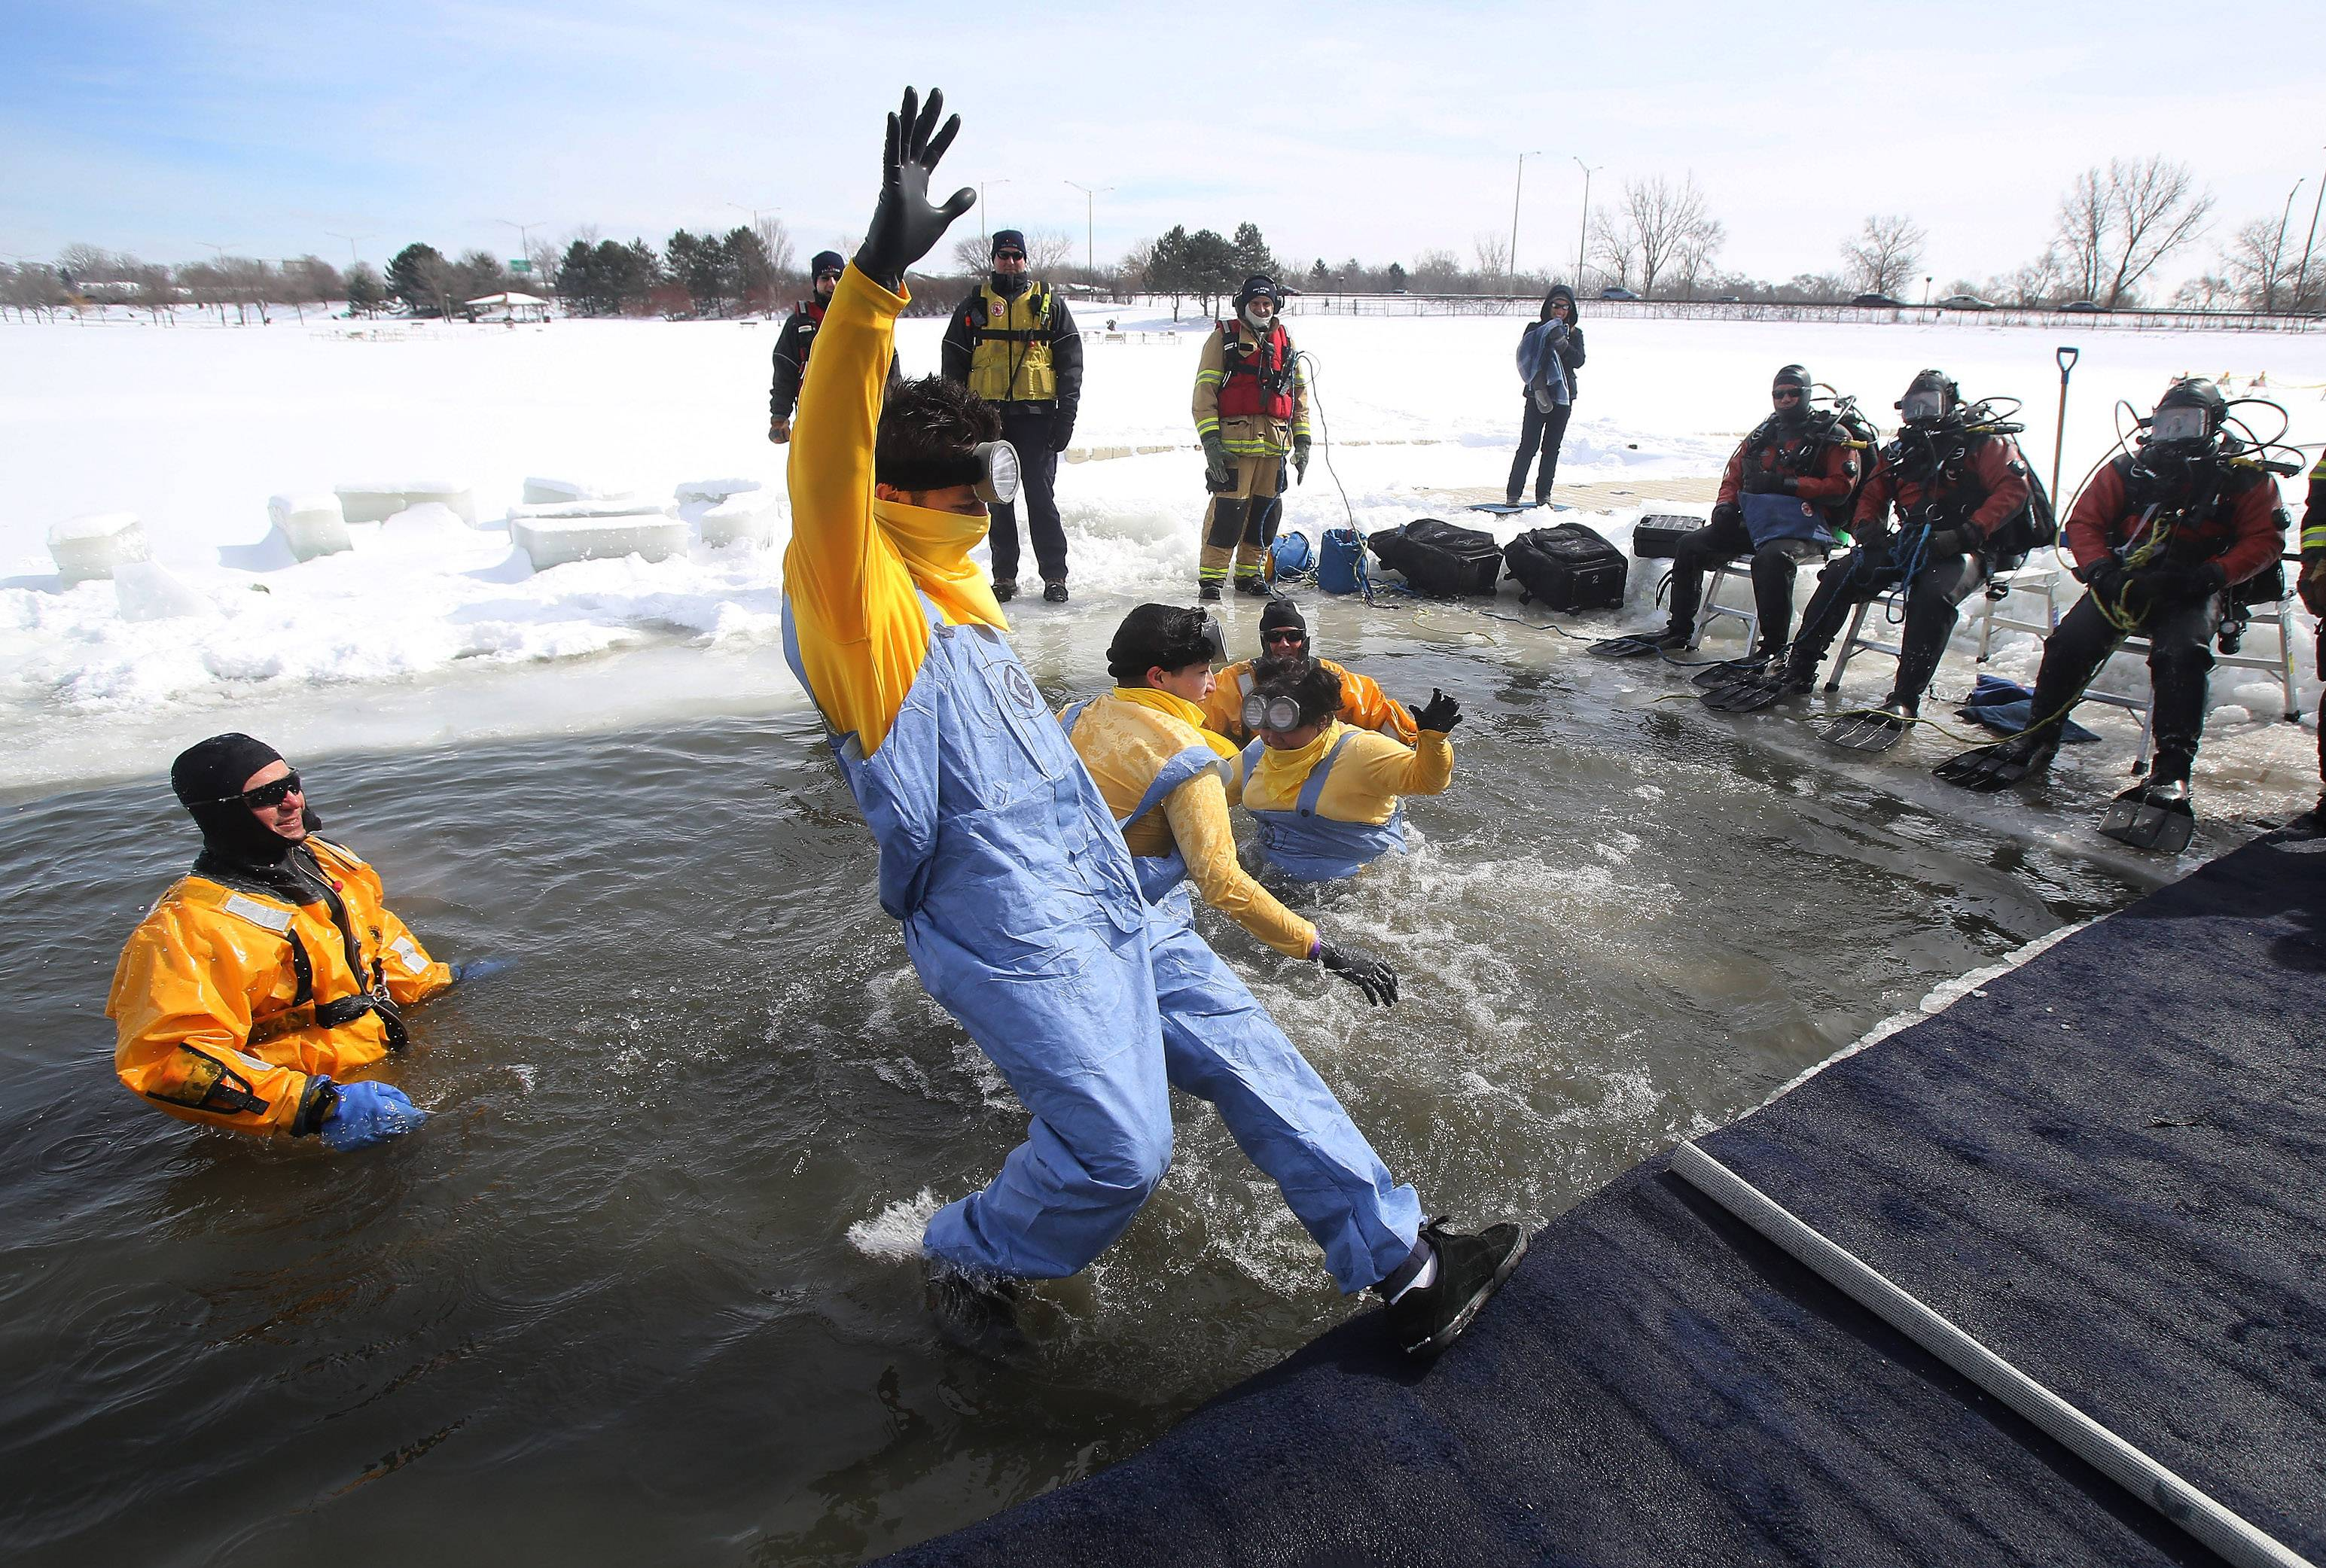 "The Palatine Fire Department Dive Rescue Team watches Sunday as Danny Solovastru of Morton Grove, dressed as a Minion from the ""Despicable Me"" movies, falls into the cold water during the Polar Plunge at Twin Lakes Recreation Area in Palatine. The event raised more than $100,000 for Special Olympics."